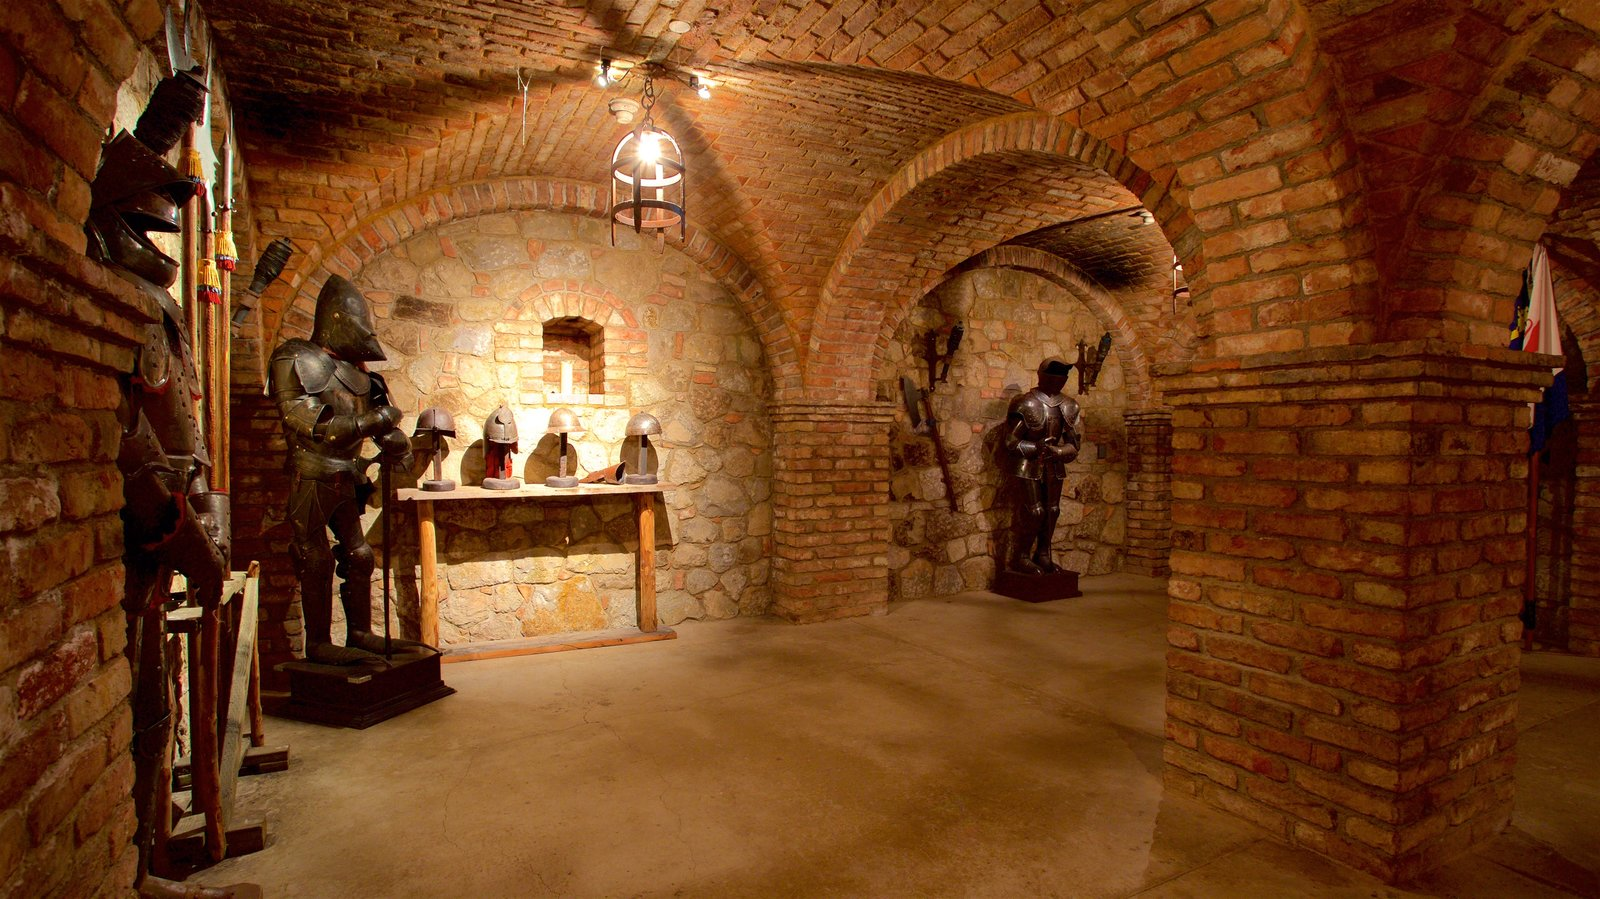 Castello di Amorosa showing interior views, a castle and heritage elements